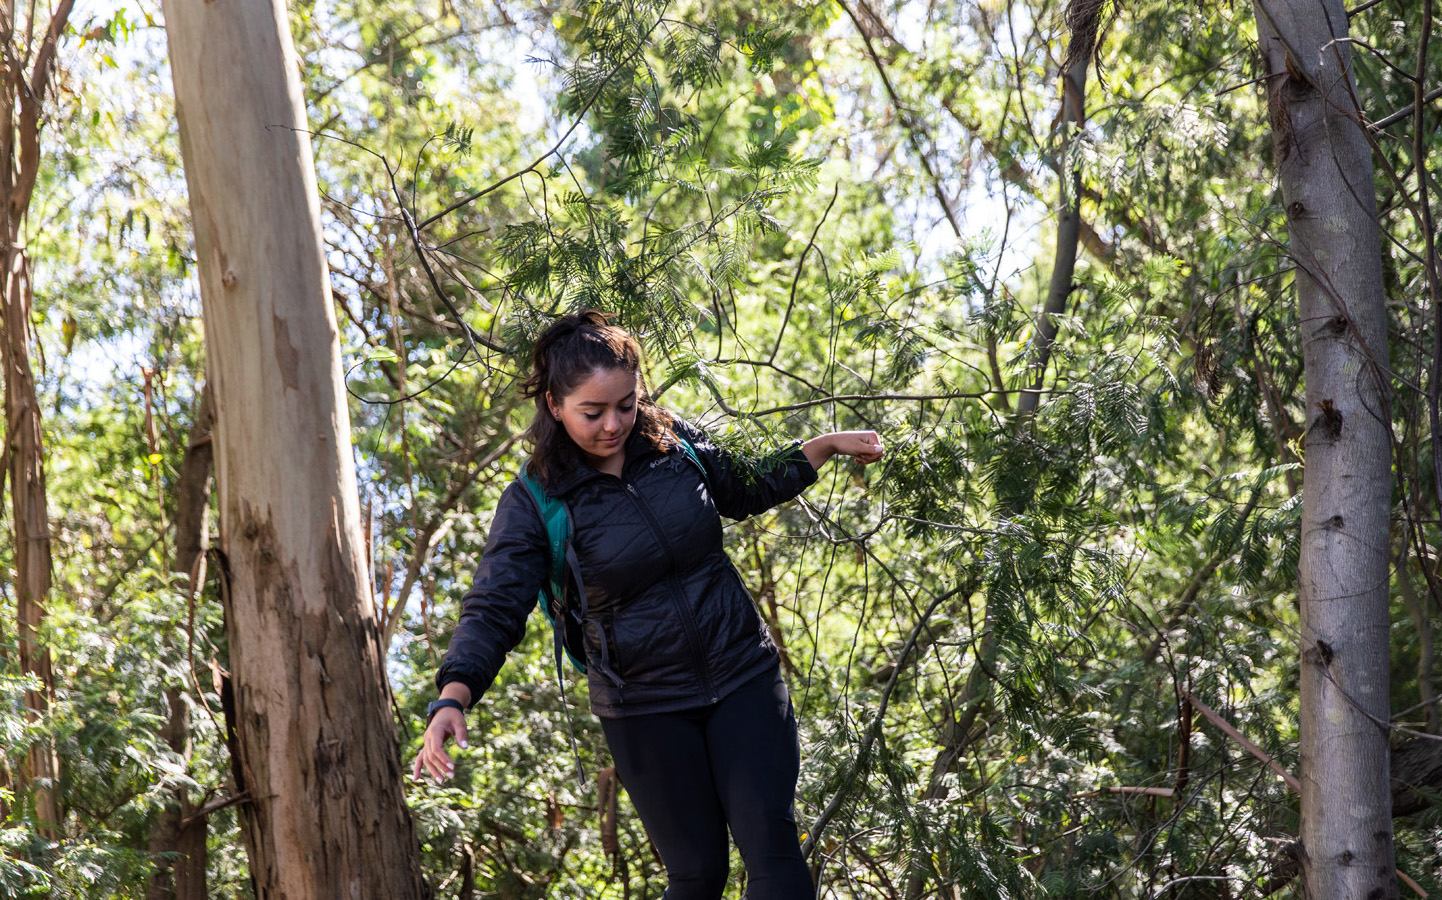 Holy Names University student hiking in San Francisco Bay Area woods